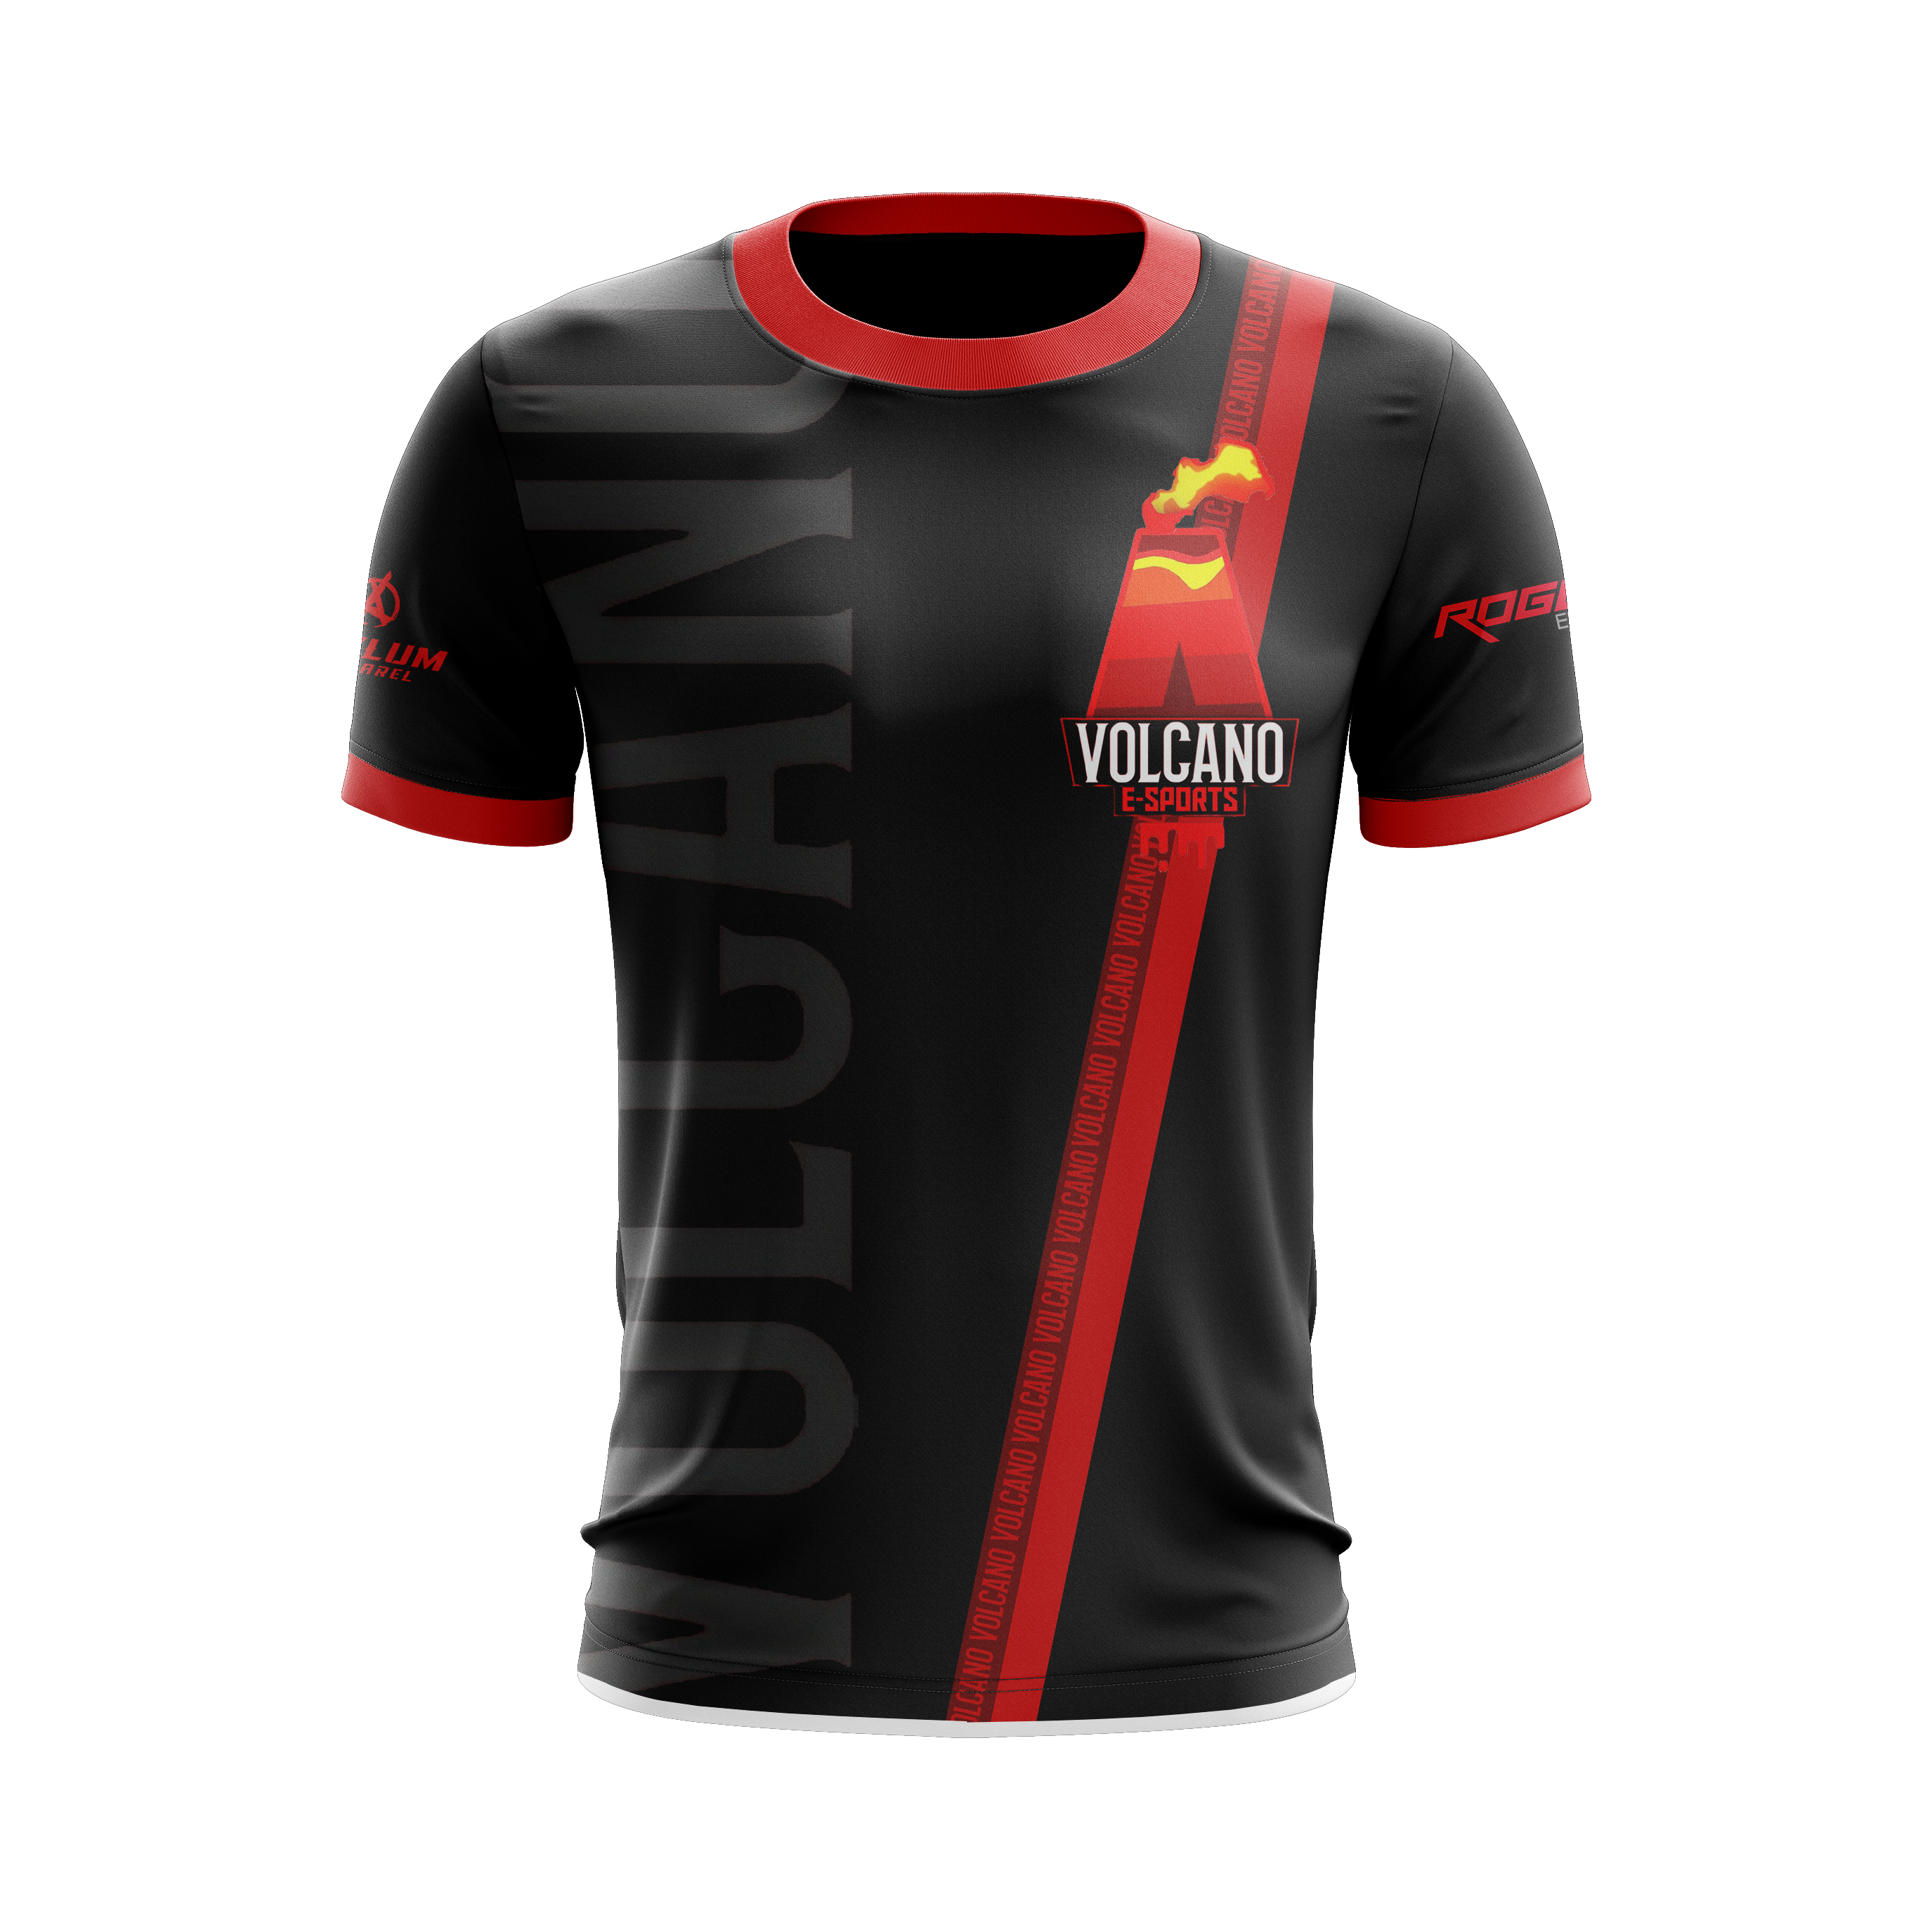 Volcano Esports Official Jersey 21/22